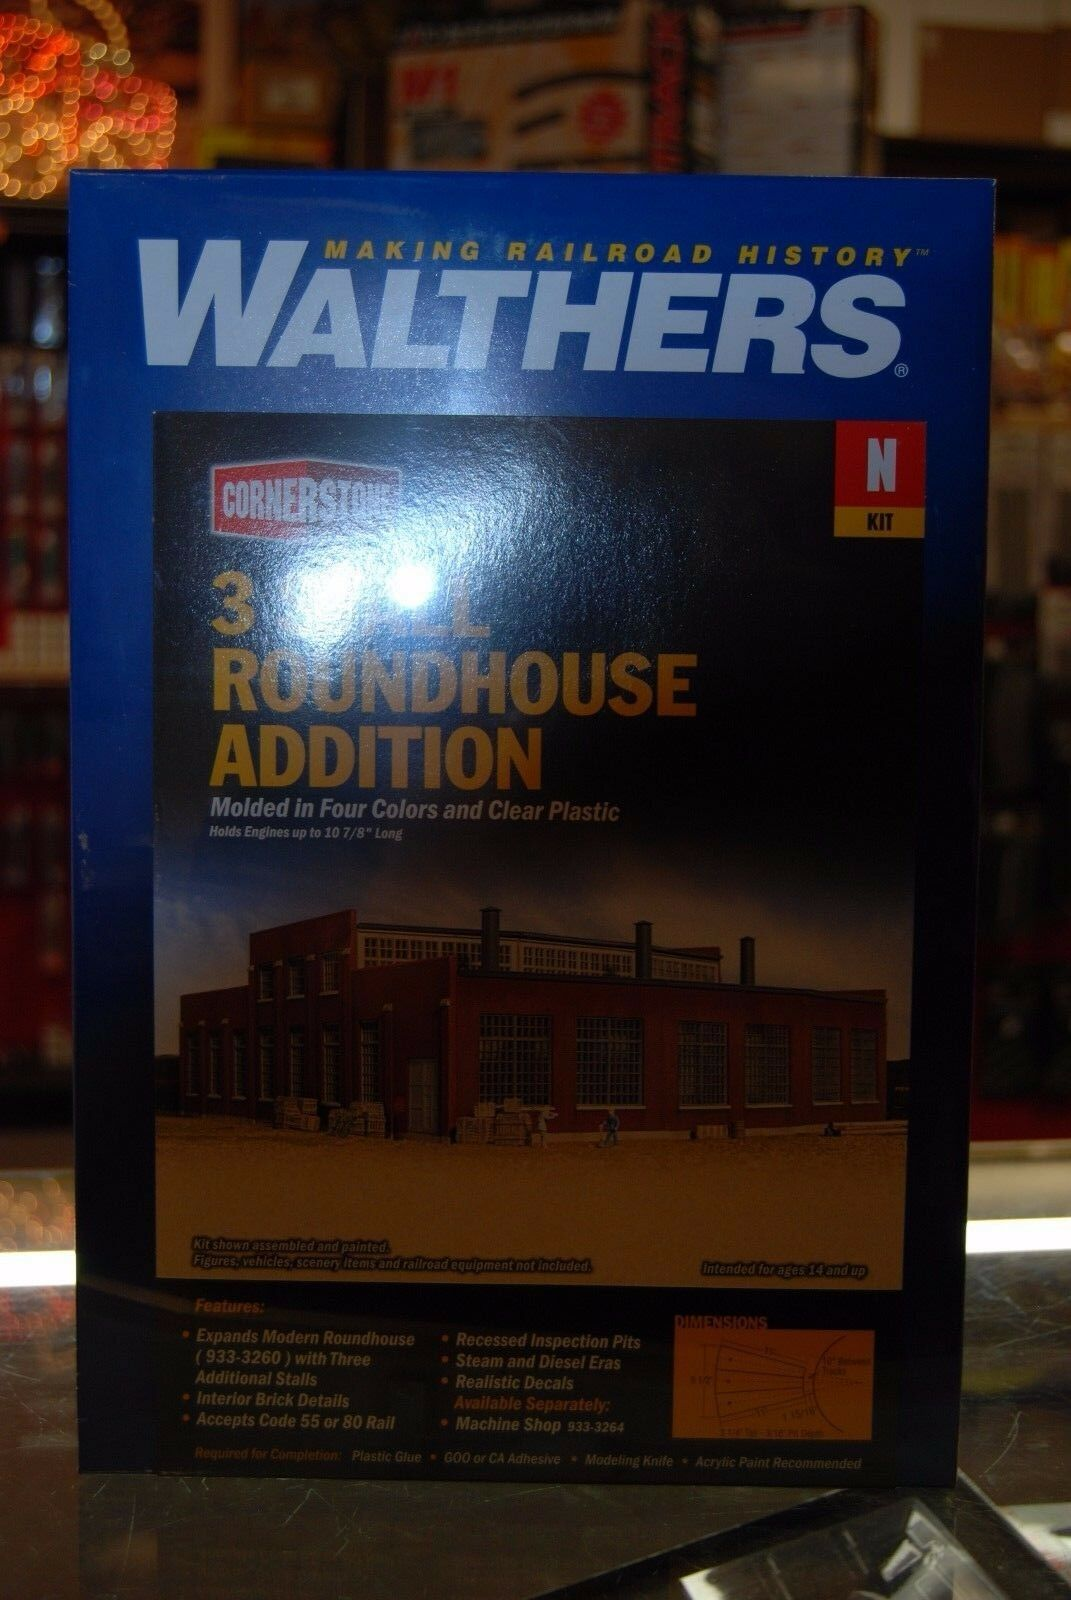 N Walthers Cornerstone 933-3261 * 3 Stall Roundouse ADDITION kit * NIB